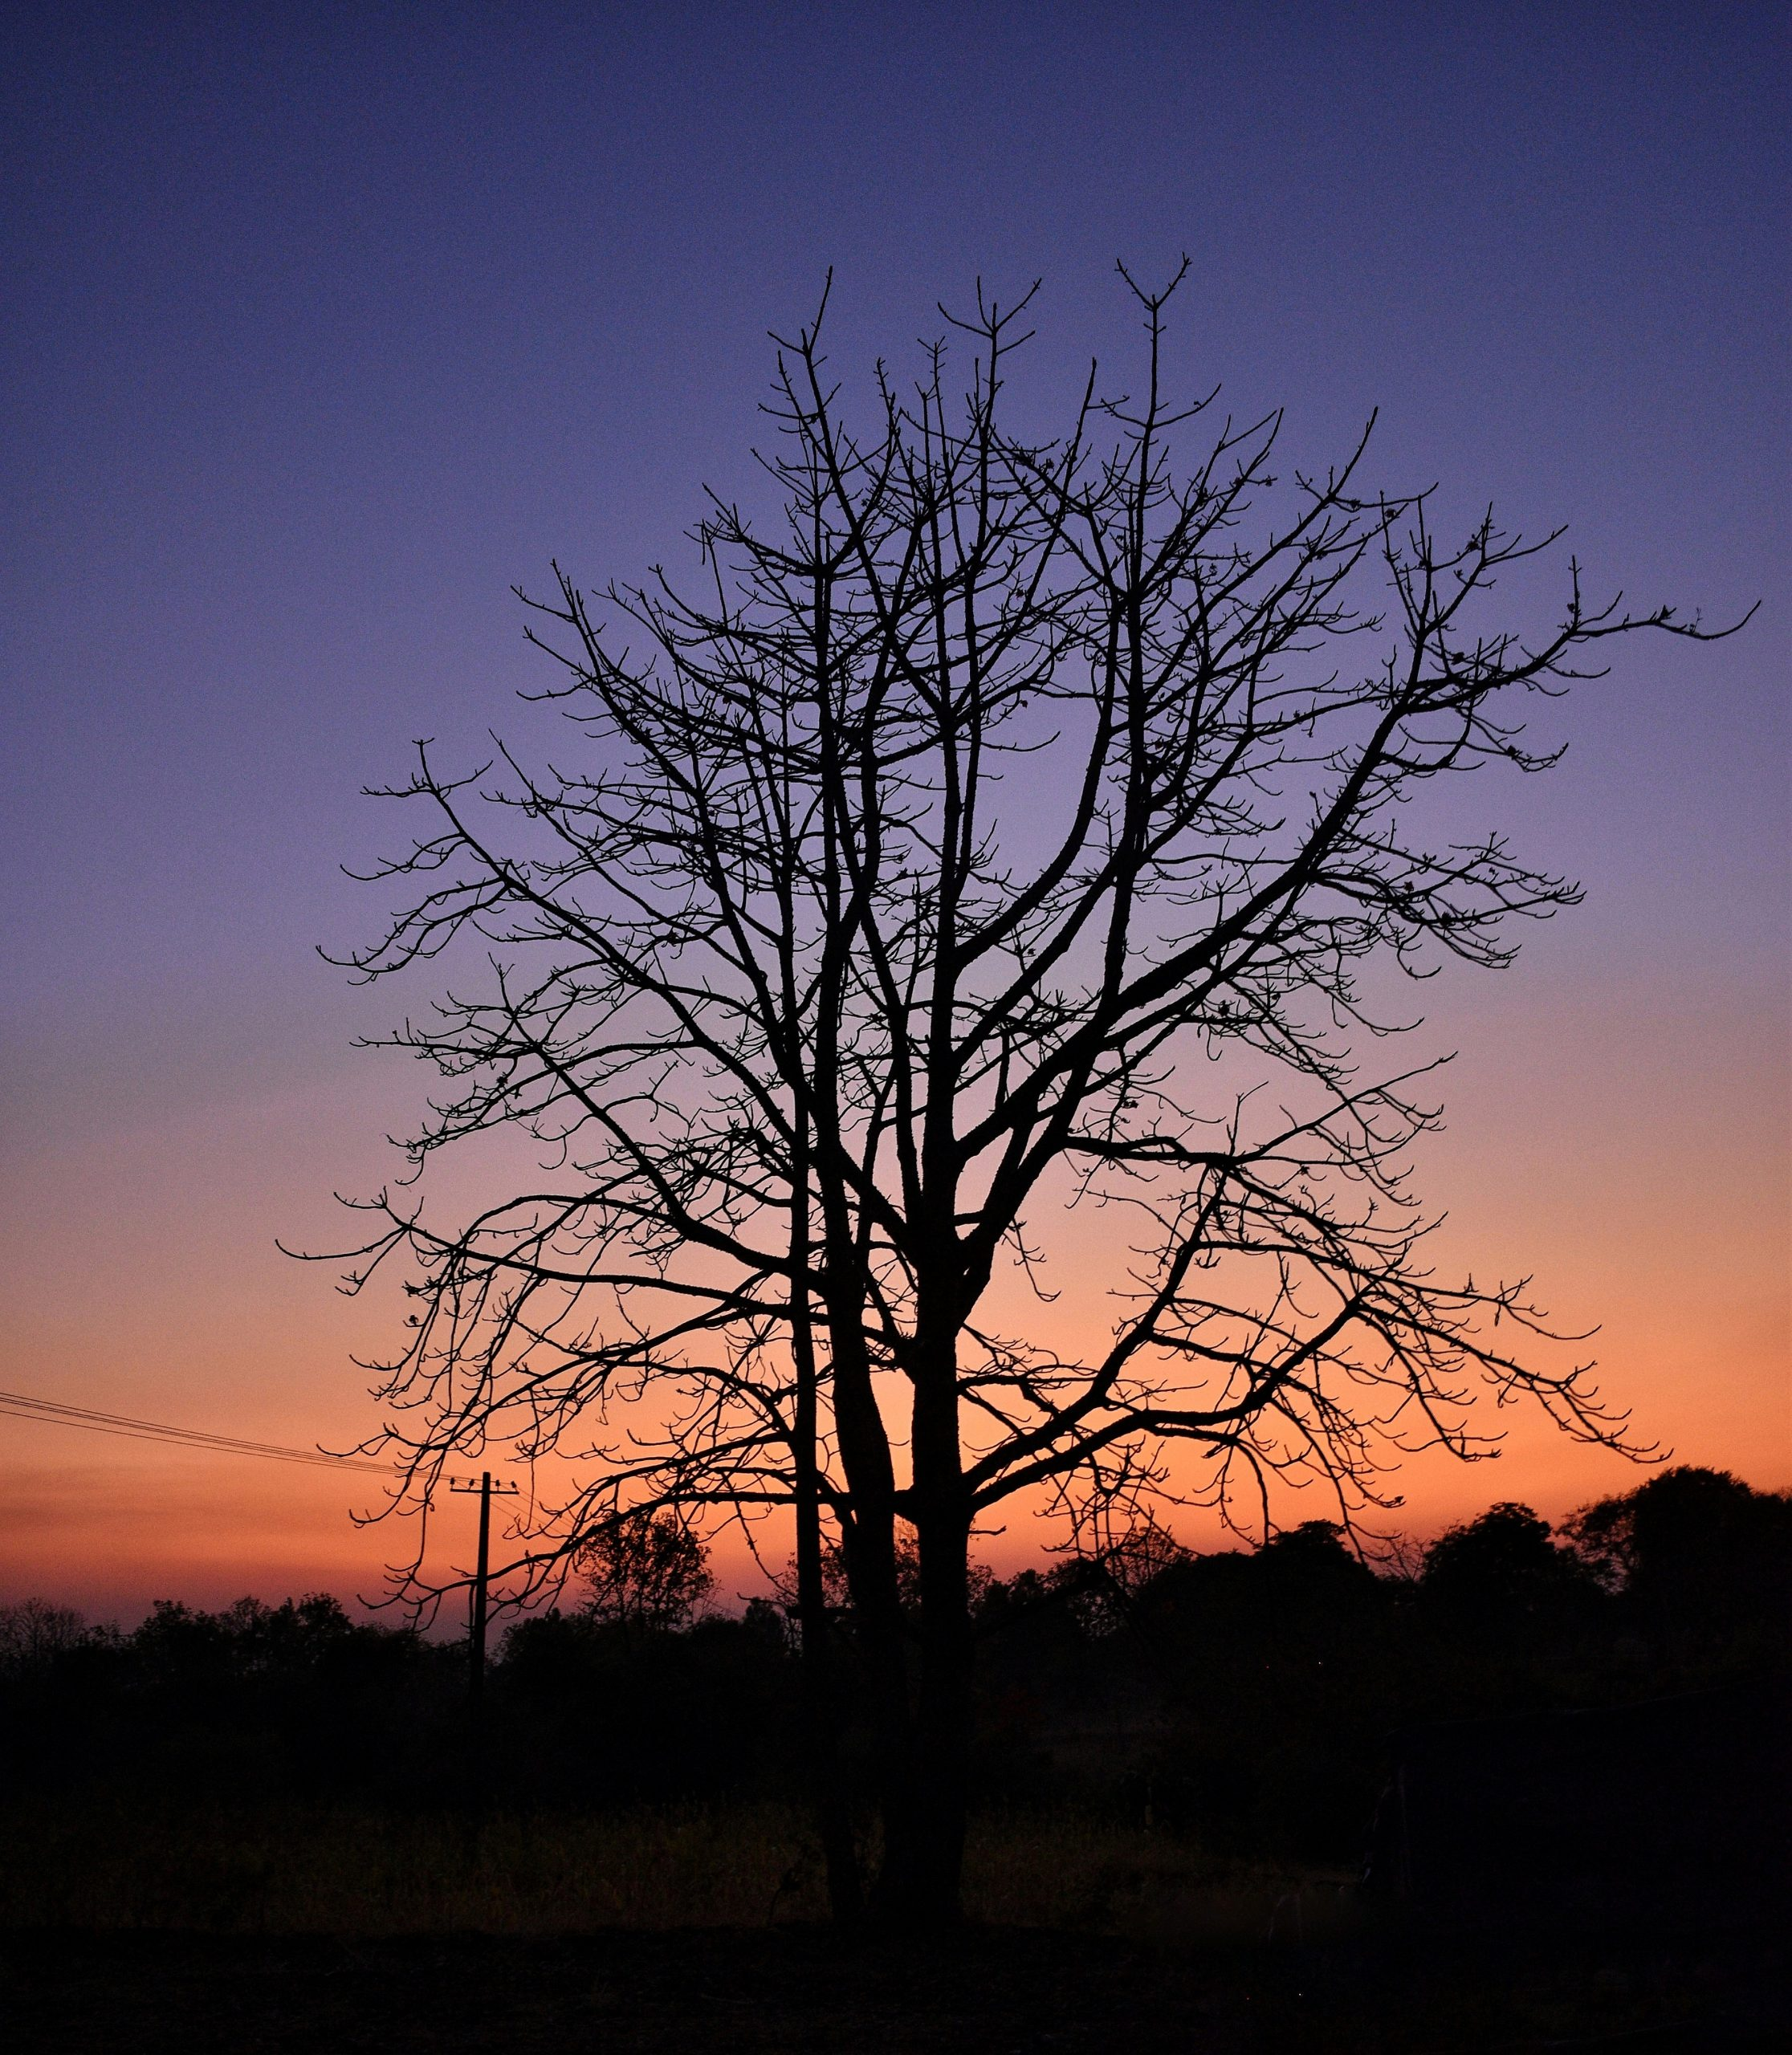 Tree Silhouette on Evening sunset